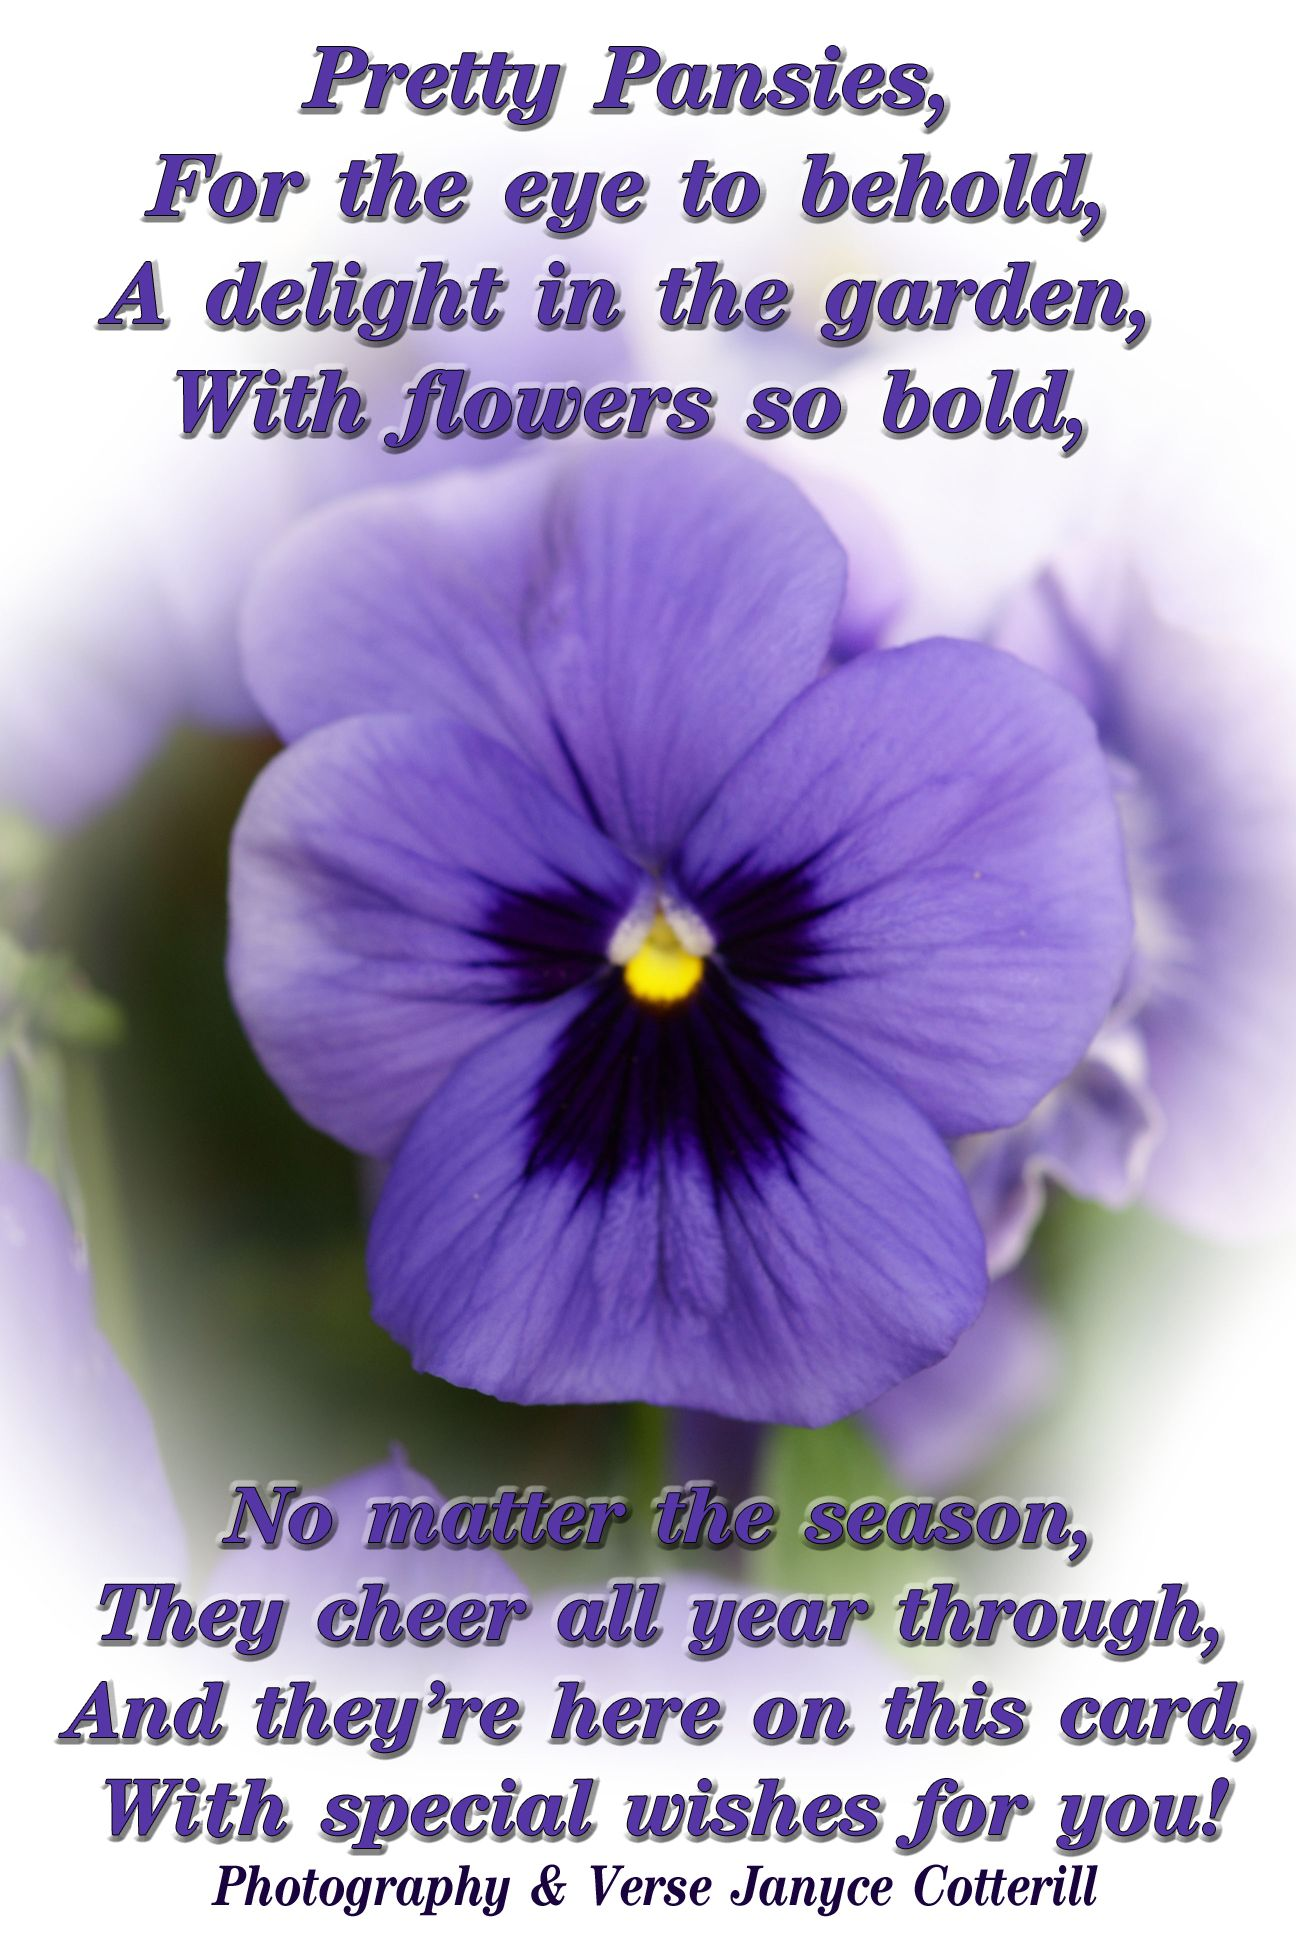 One Of My Own Pansy Verses Feel Free To Use This Or Any Of My Other Verses In You Card Making Or Crafting Verses For Cards Pansies Pansies Flowers